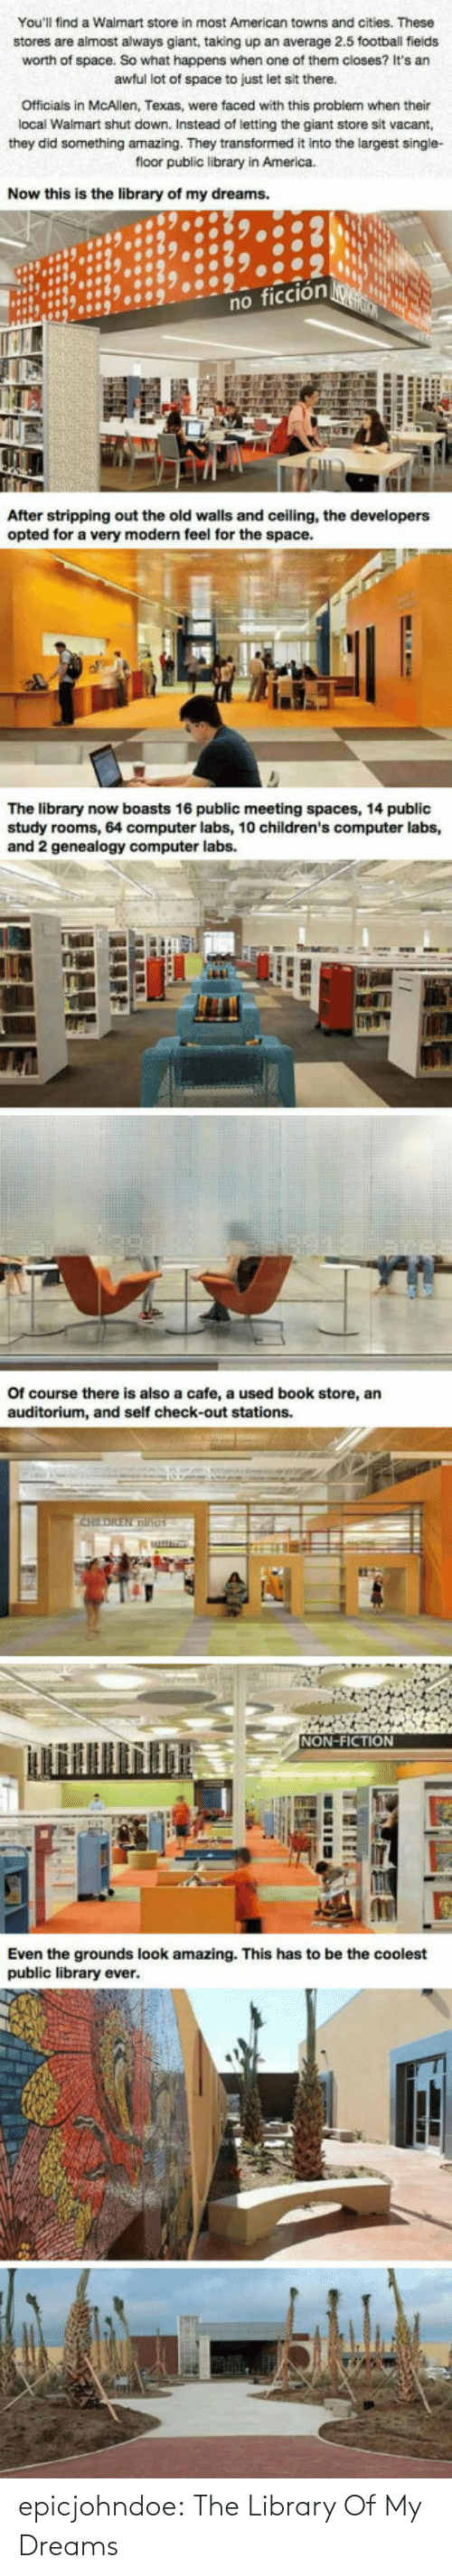 study: You'll find a Walmart store in most American towns and cities. These  stores are almost always giant, taking up an average 2.5 football fields  worth of space. So what happens when one of them closes? It's an  awful lot of space to just let sit there.  Officials in McAllen, Texas, were faced with this problem when their  local Walmart shut down. Instead of letting the giant store sit vacant,  they did something amazing. They transformed it into the largest single-  floor public library in America.  Now this is the library of my dreams.  no fic  After stripping out the old walls and ceiling, the developers  opted for a very modern feel for the space.  The library now boasts 16 public meeting spaces, 14 public  study rooms, 64 computer labs, 10 children's computer labs,  and 2 genealogy computer labs.  Of course there is also a cafe, a used book store, an  auditorium, and self check-out stations.  NON-FICTION  Even the grounds look amazing. This has to be the coolest  public library ever epicjohndoe:  The Library Of My Dreams